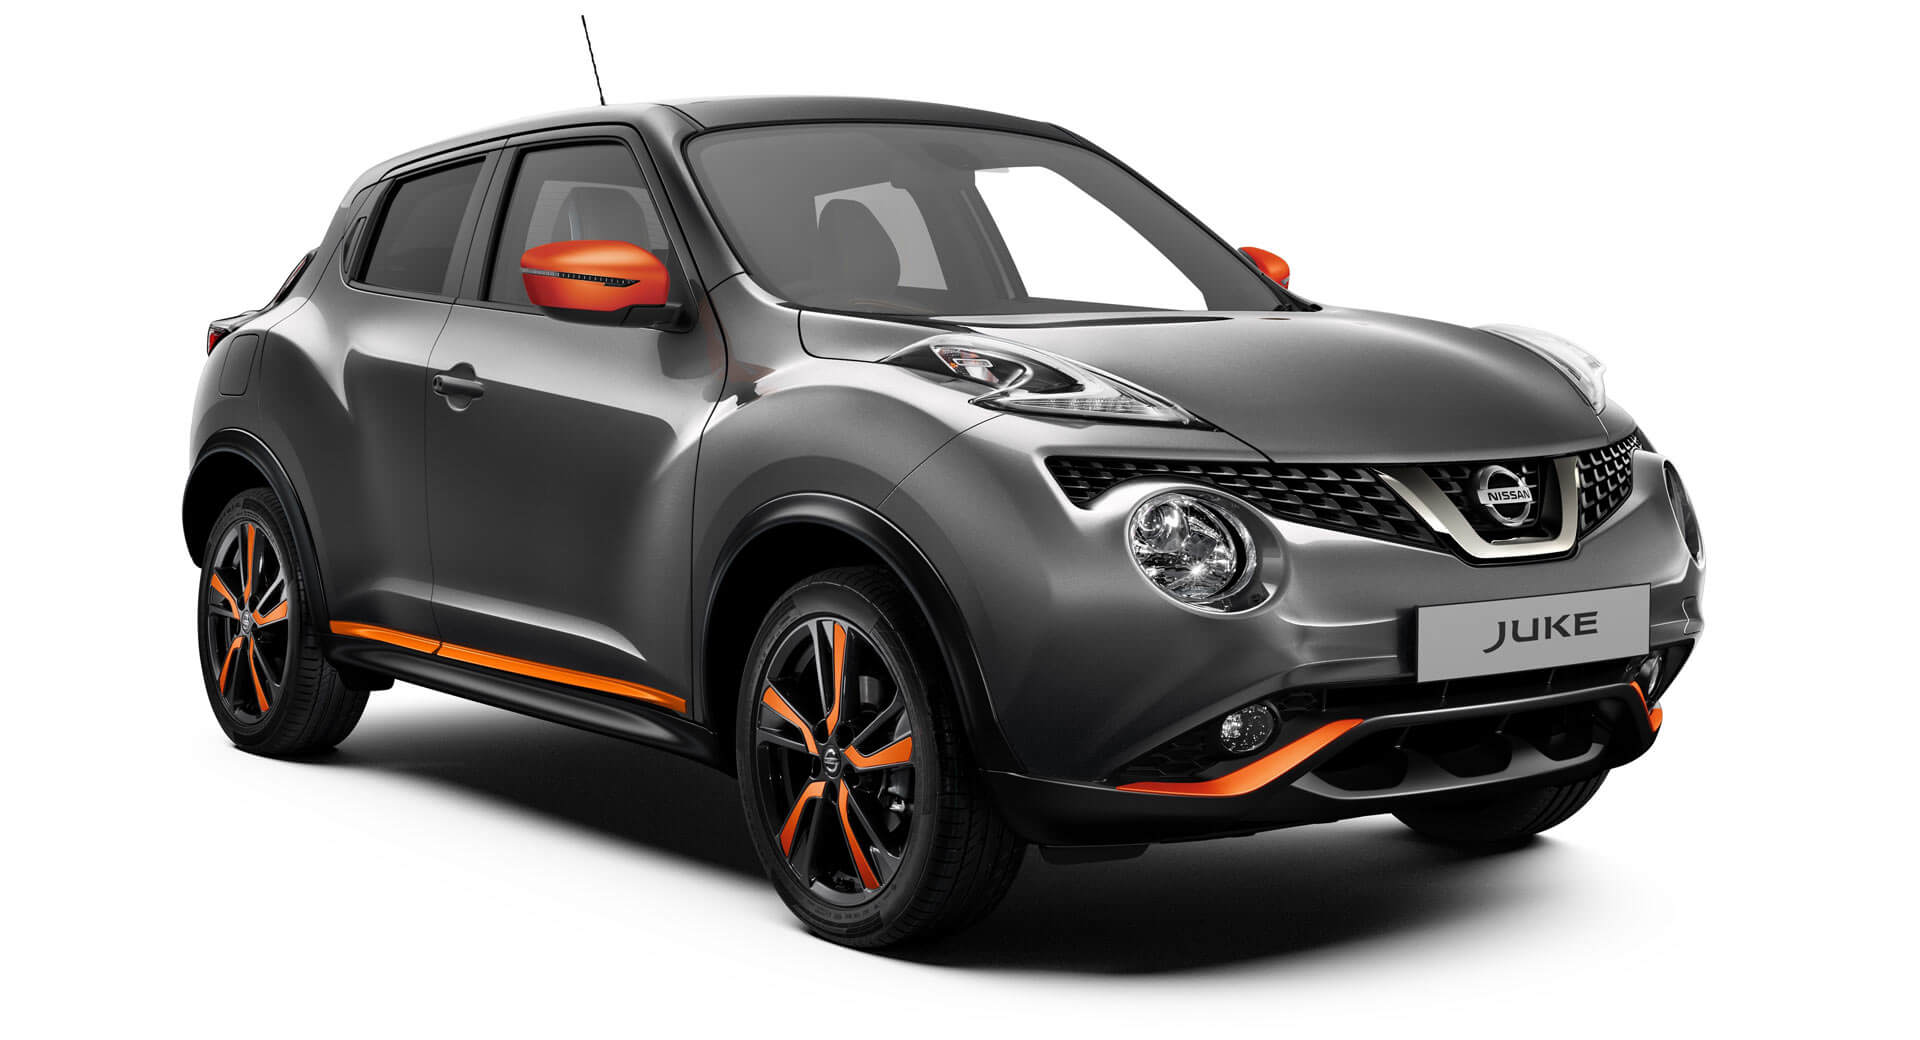 2018 nissan juke arrives in geneva with the most modest of upgrades carscoops. Black Bedroom Furniture Sets. Home Design Ideas